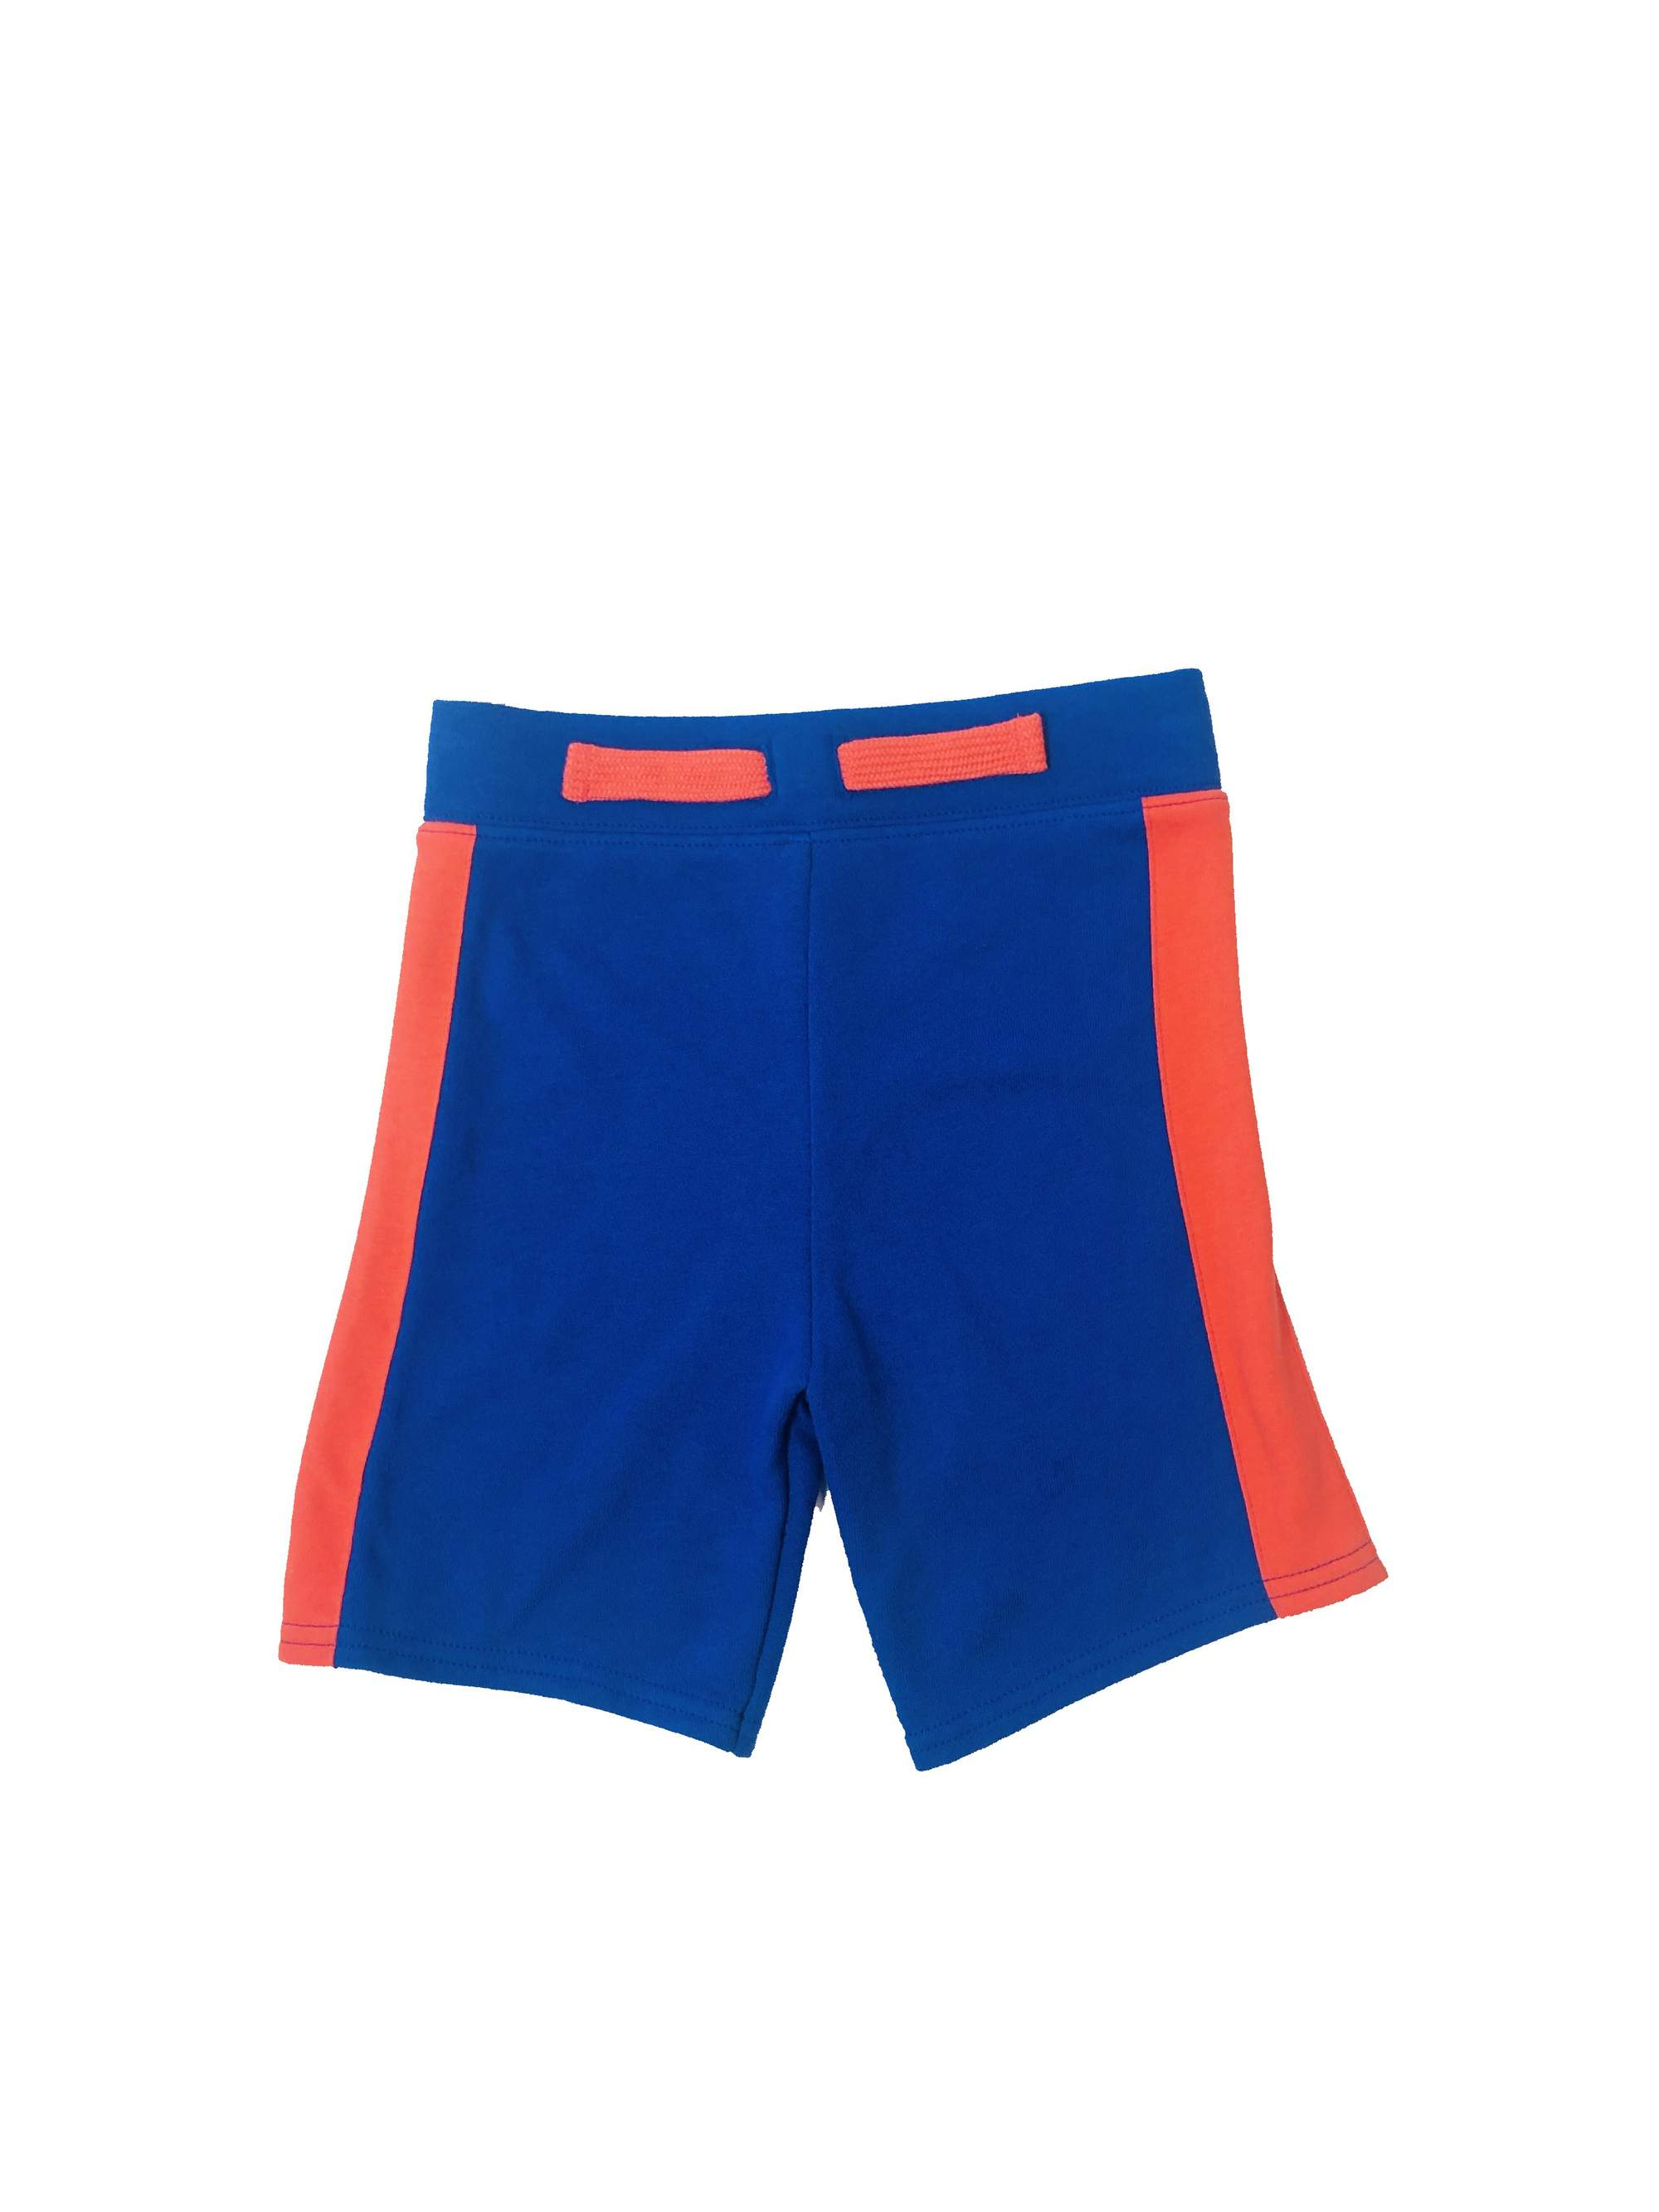 Garanimals Baby Toddler Boys Shorts Taped French Terry 12 18 24 Months 2T 3T 4T